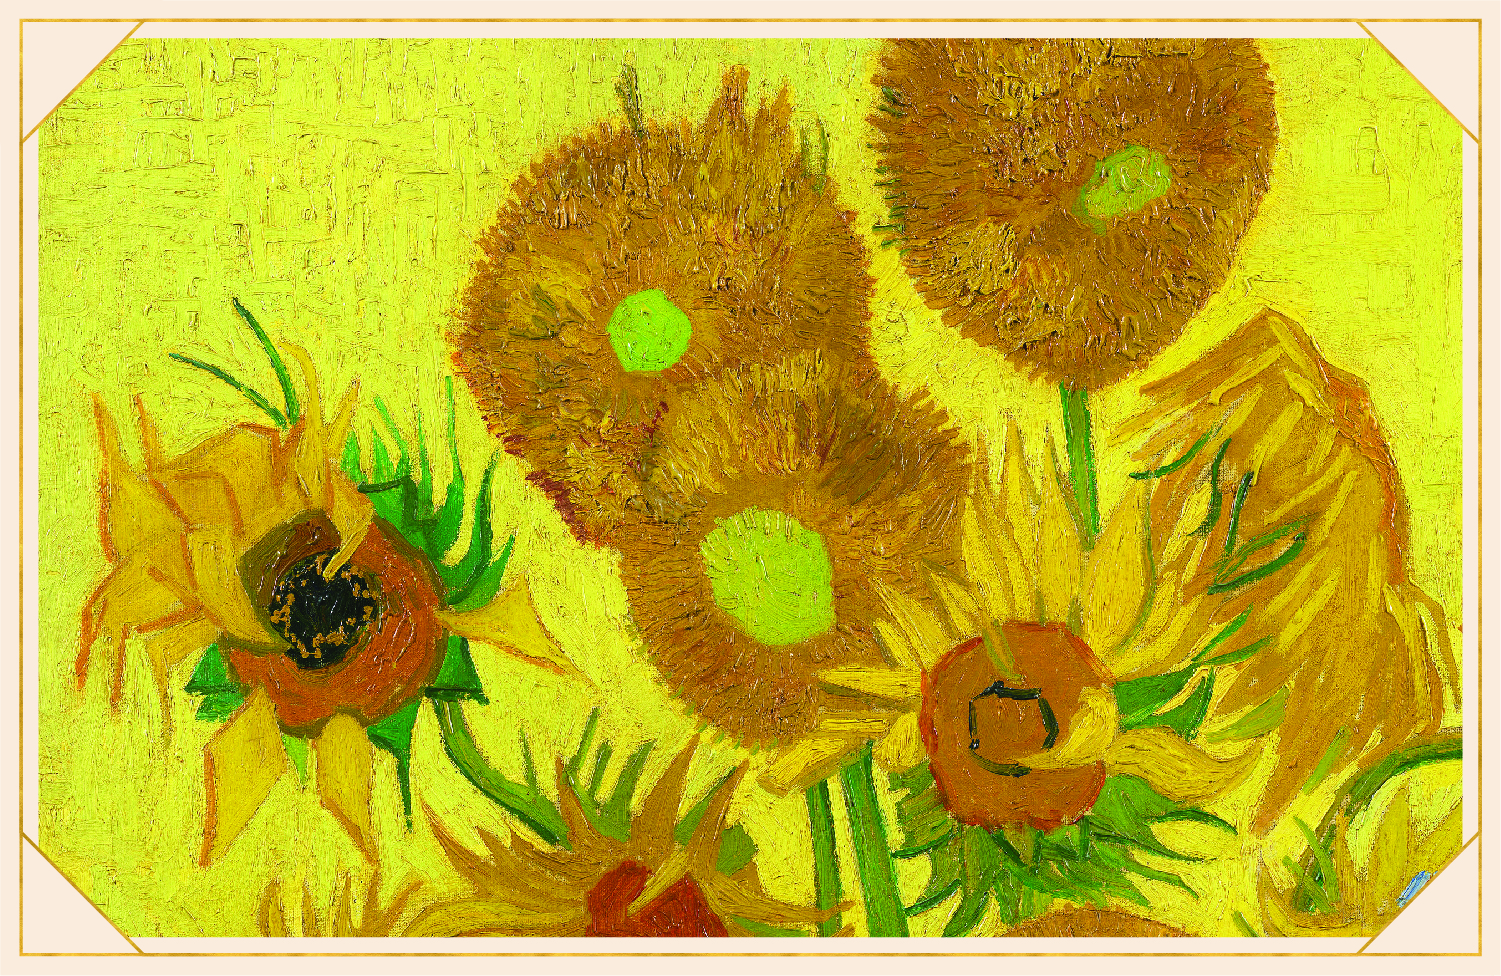 portion of van Gogh's Sunflower painting